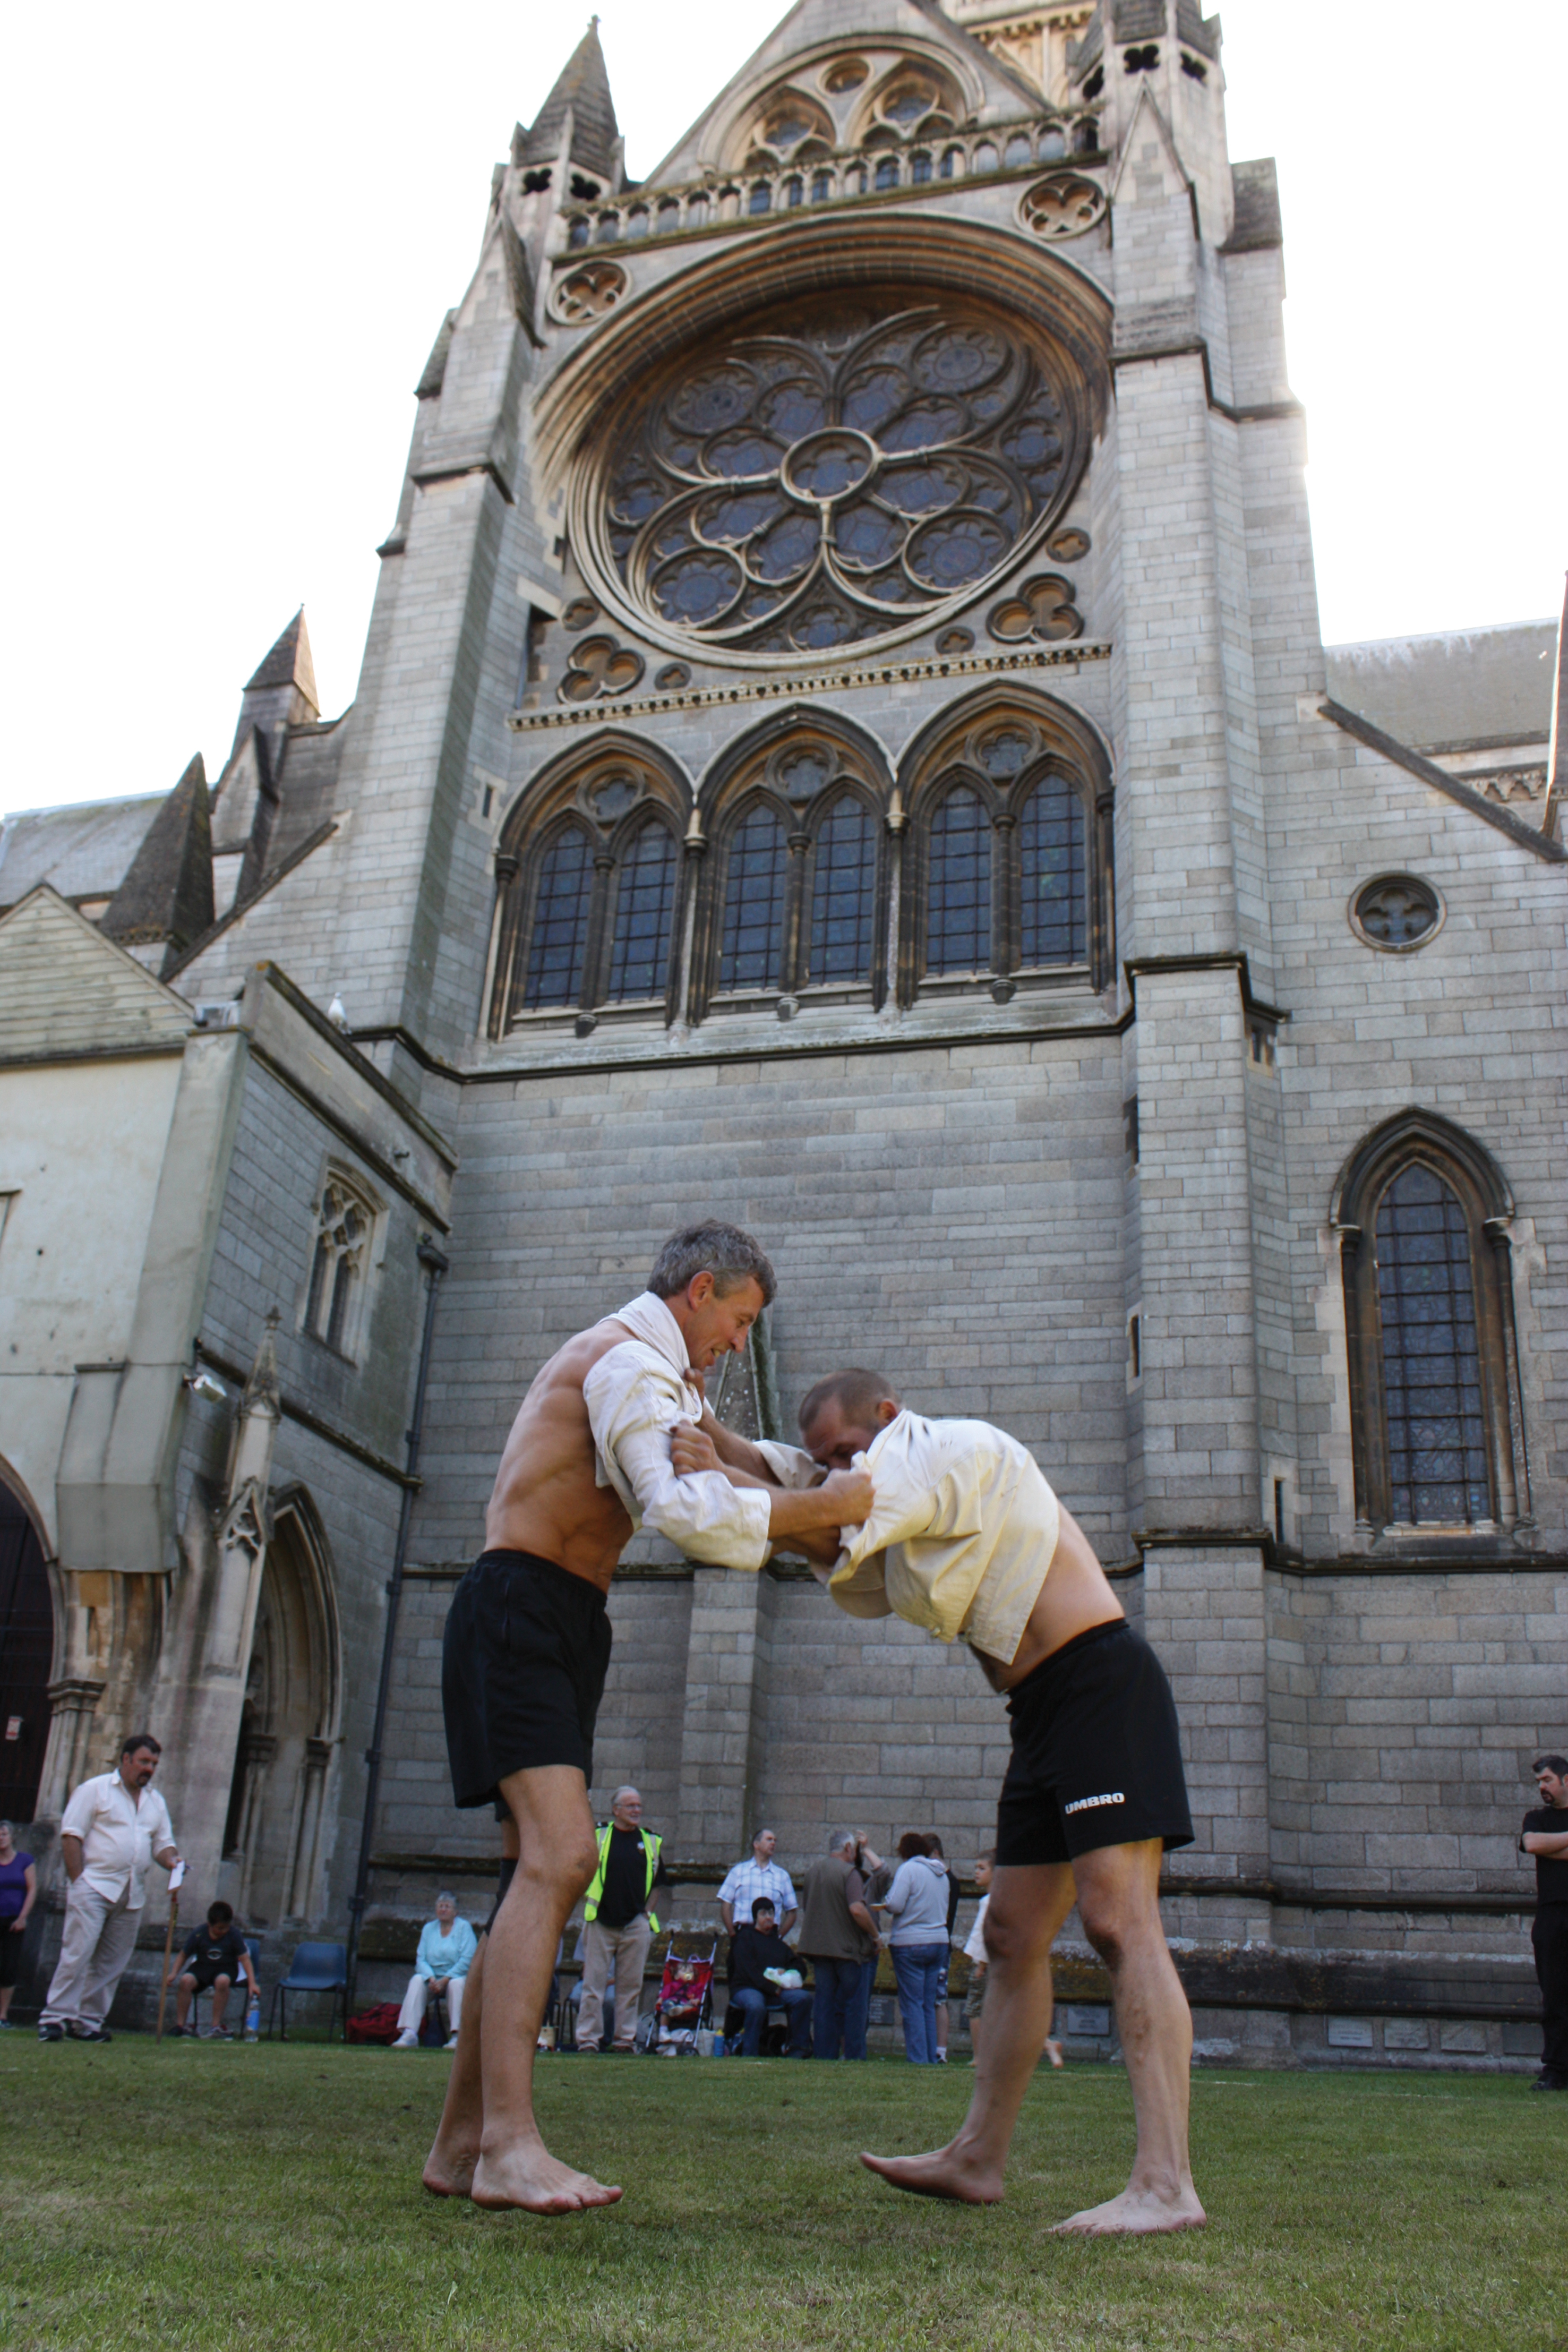 Discover the history behind the Cornish sport of Wrestling